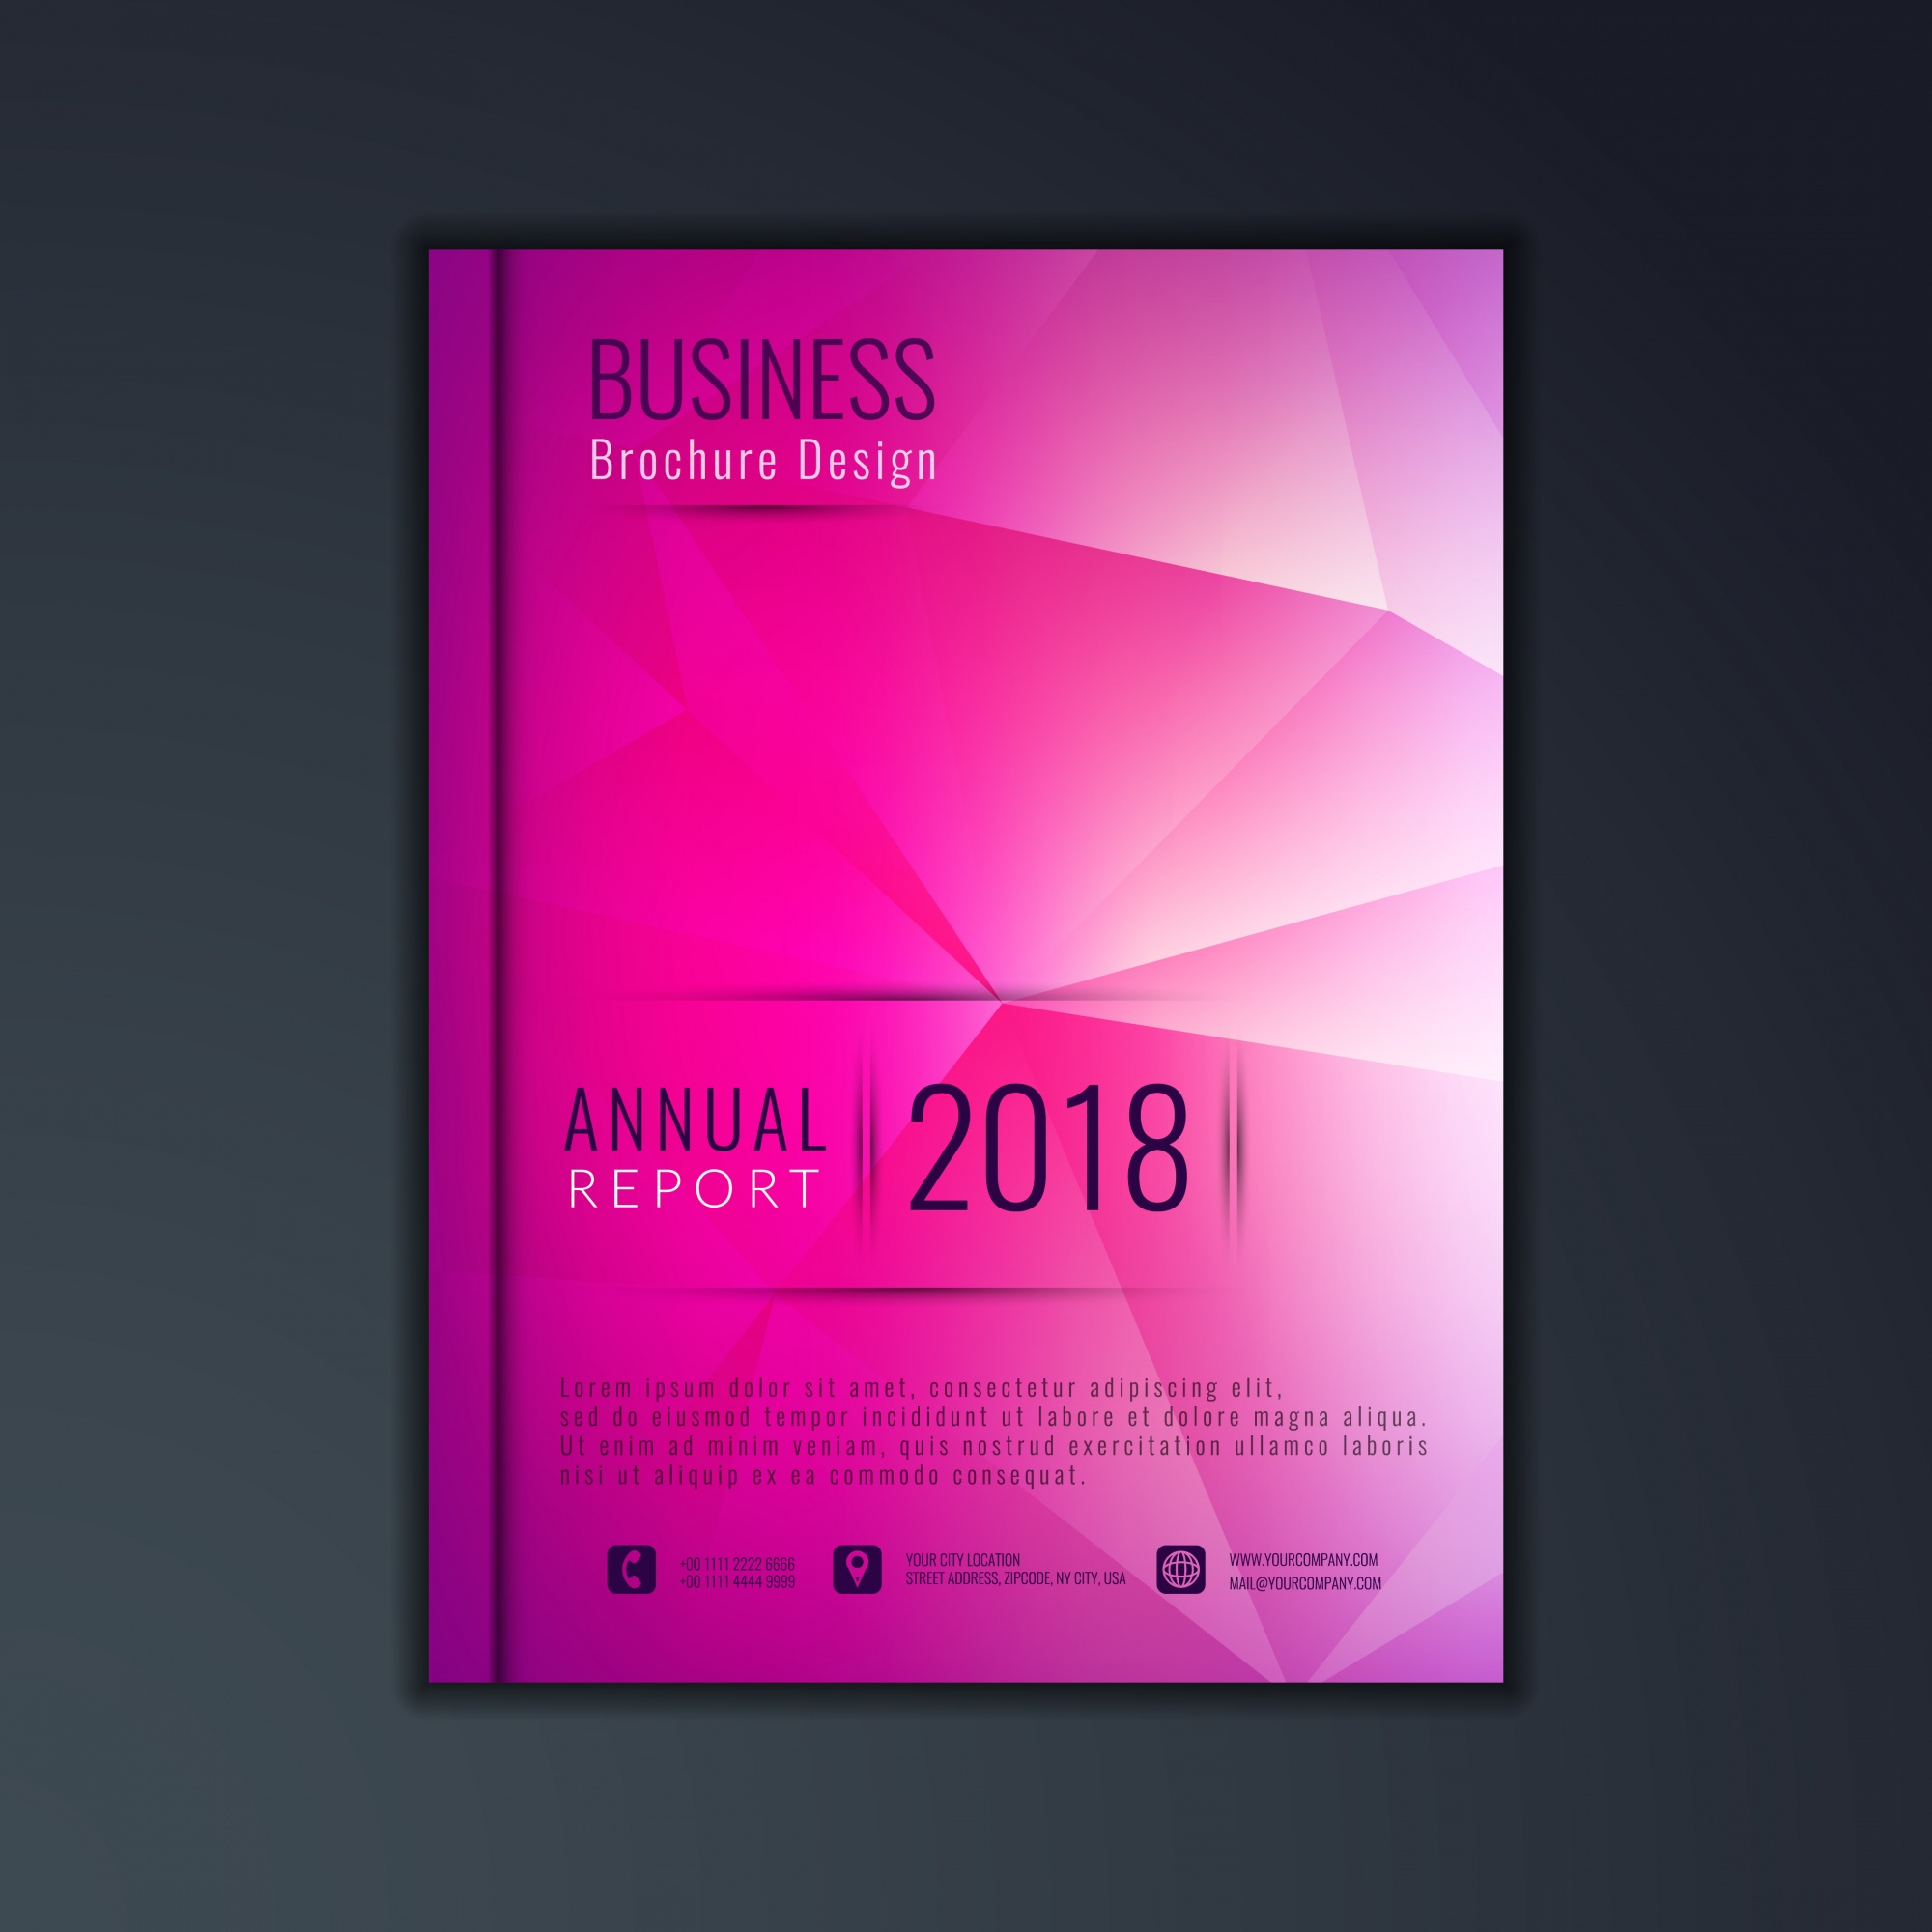 Abstract design moderno business brochure